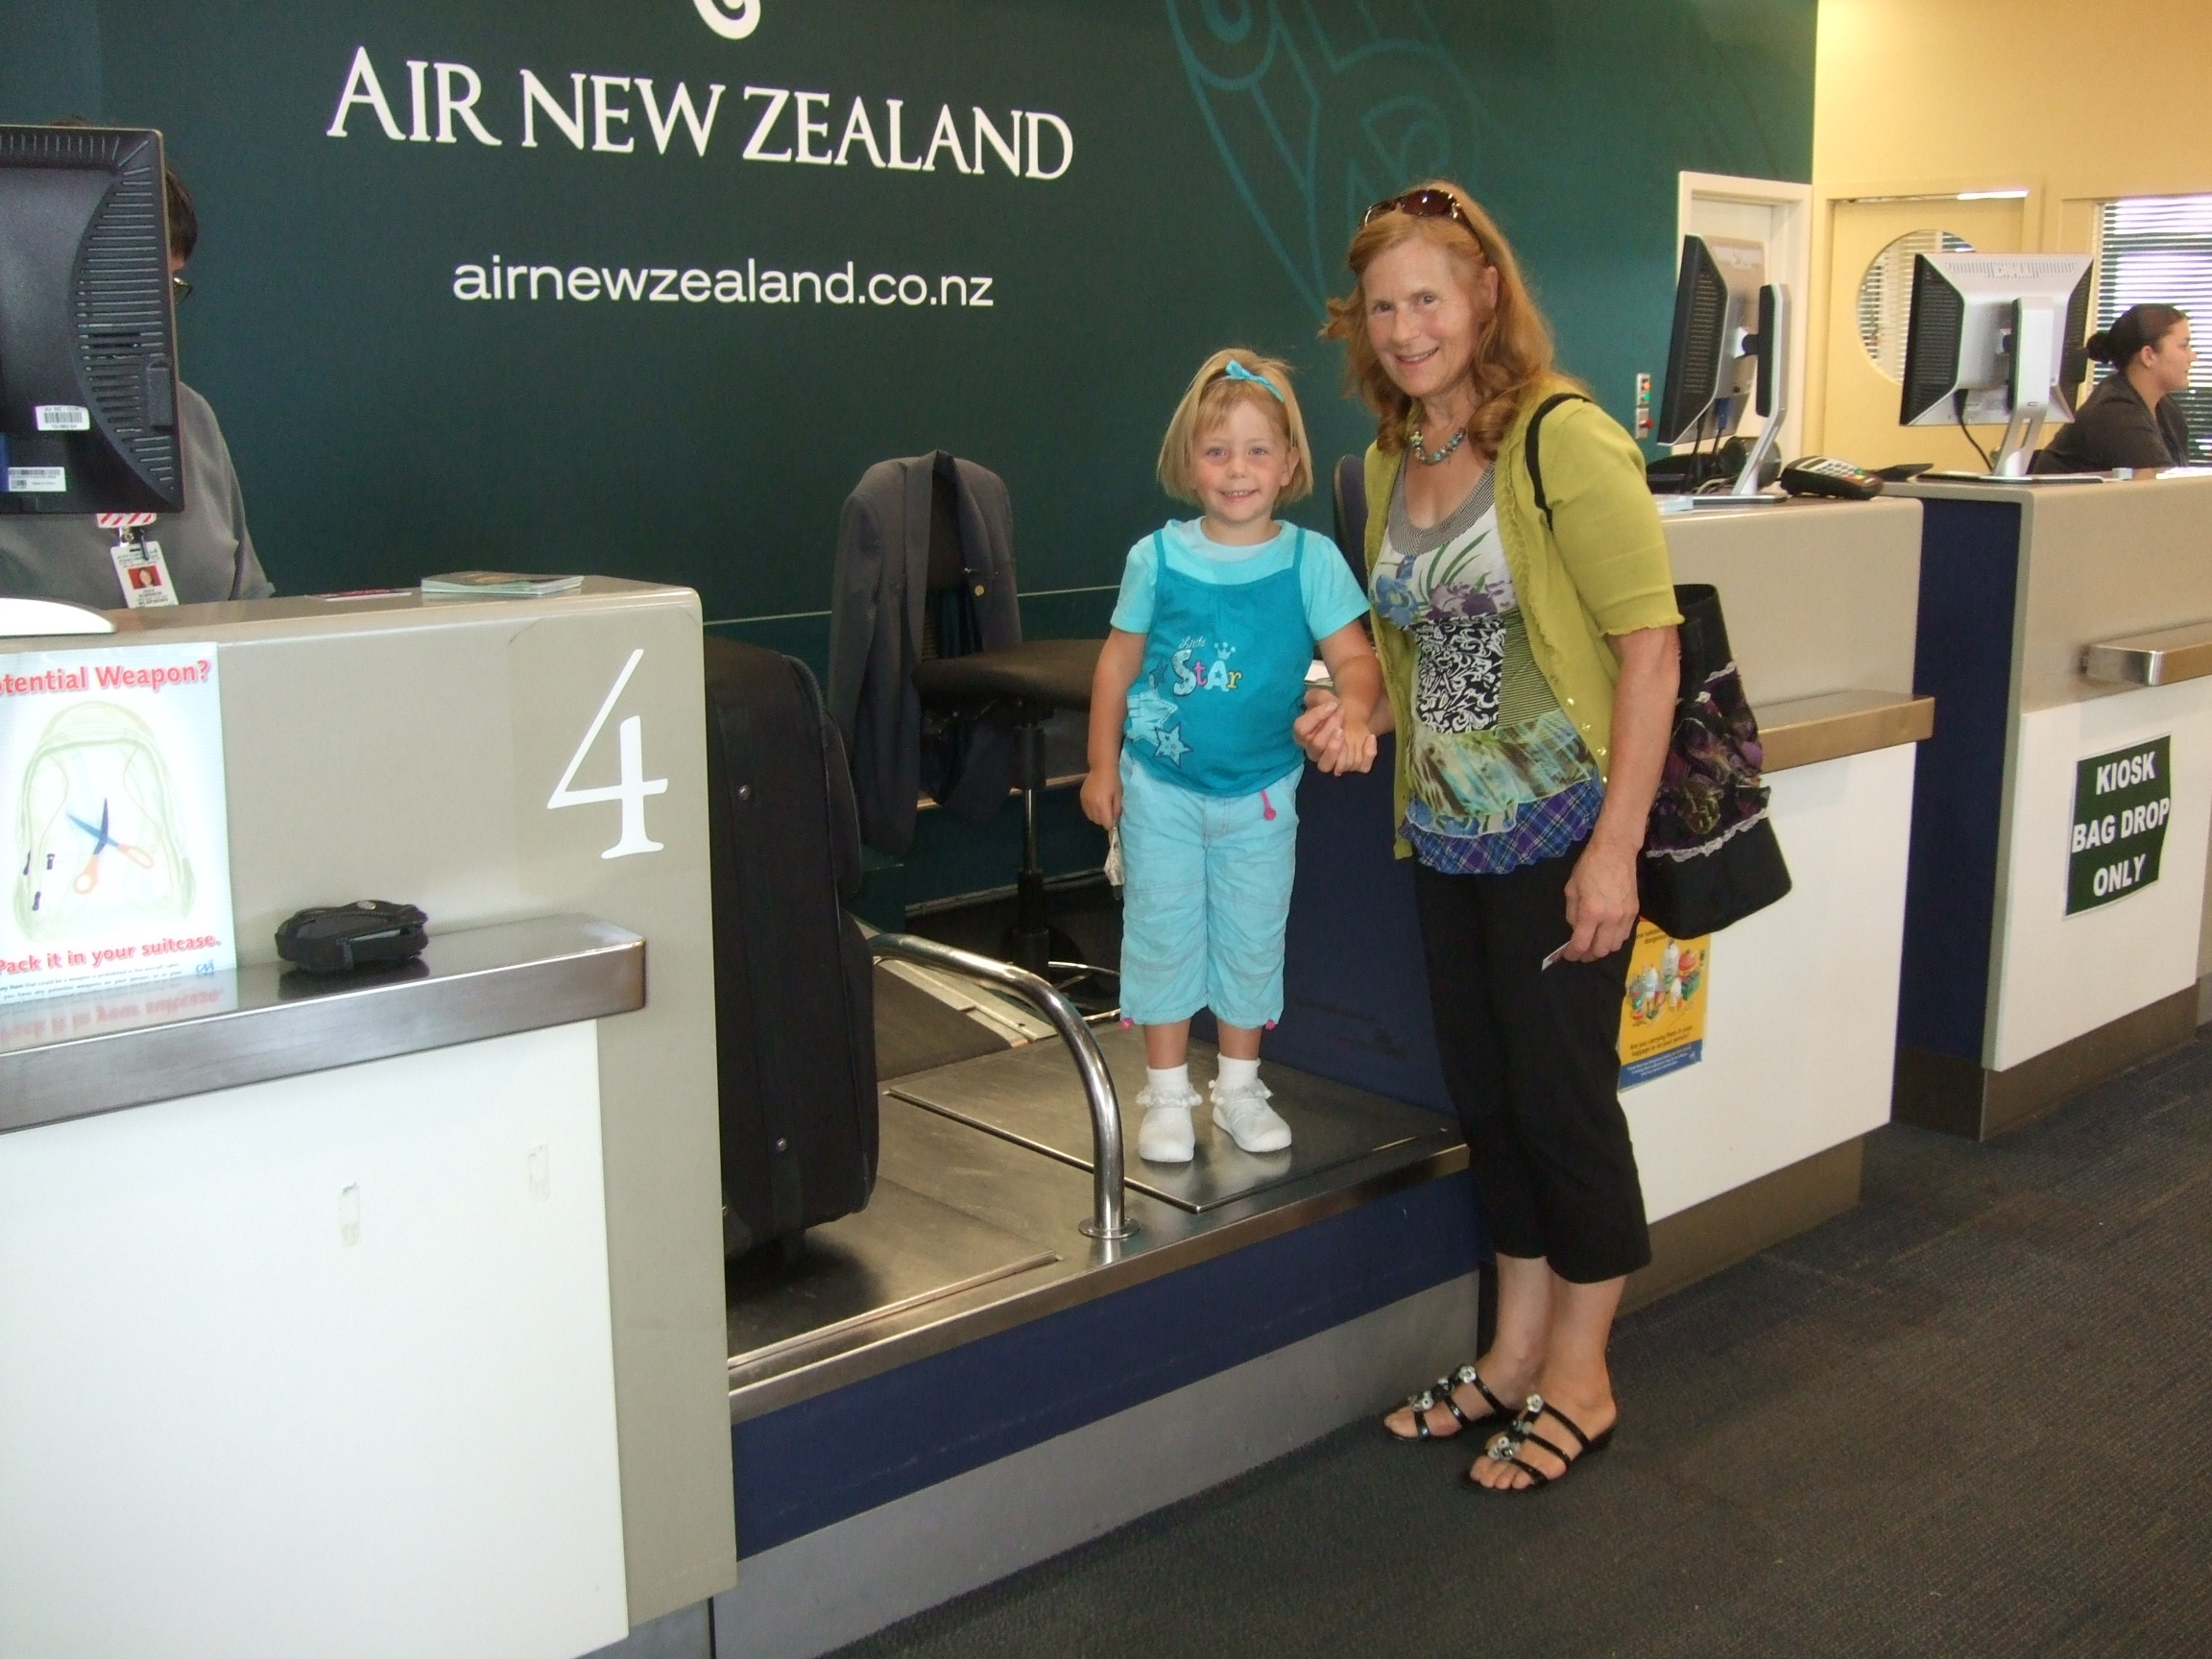 nelson-airport